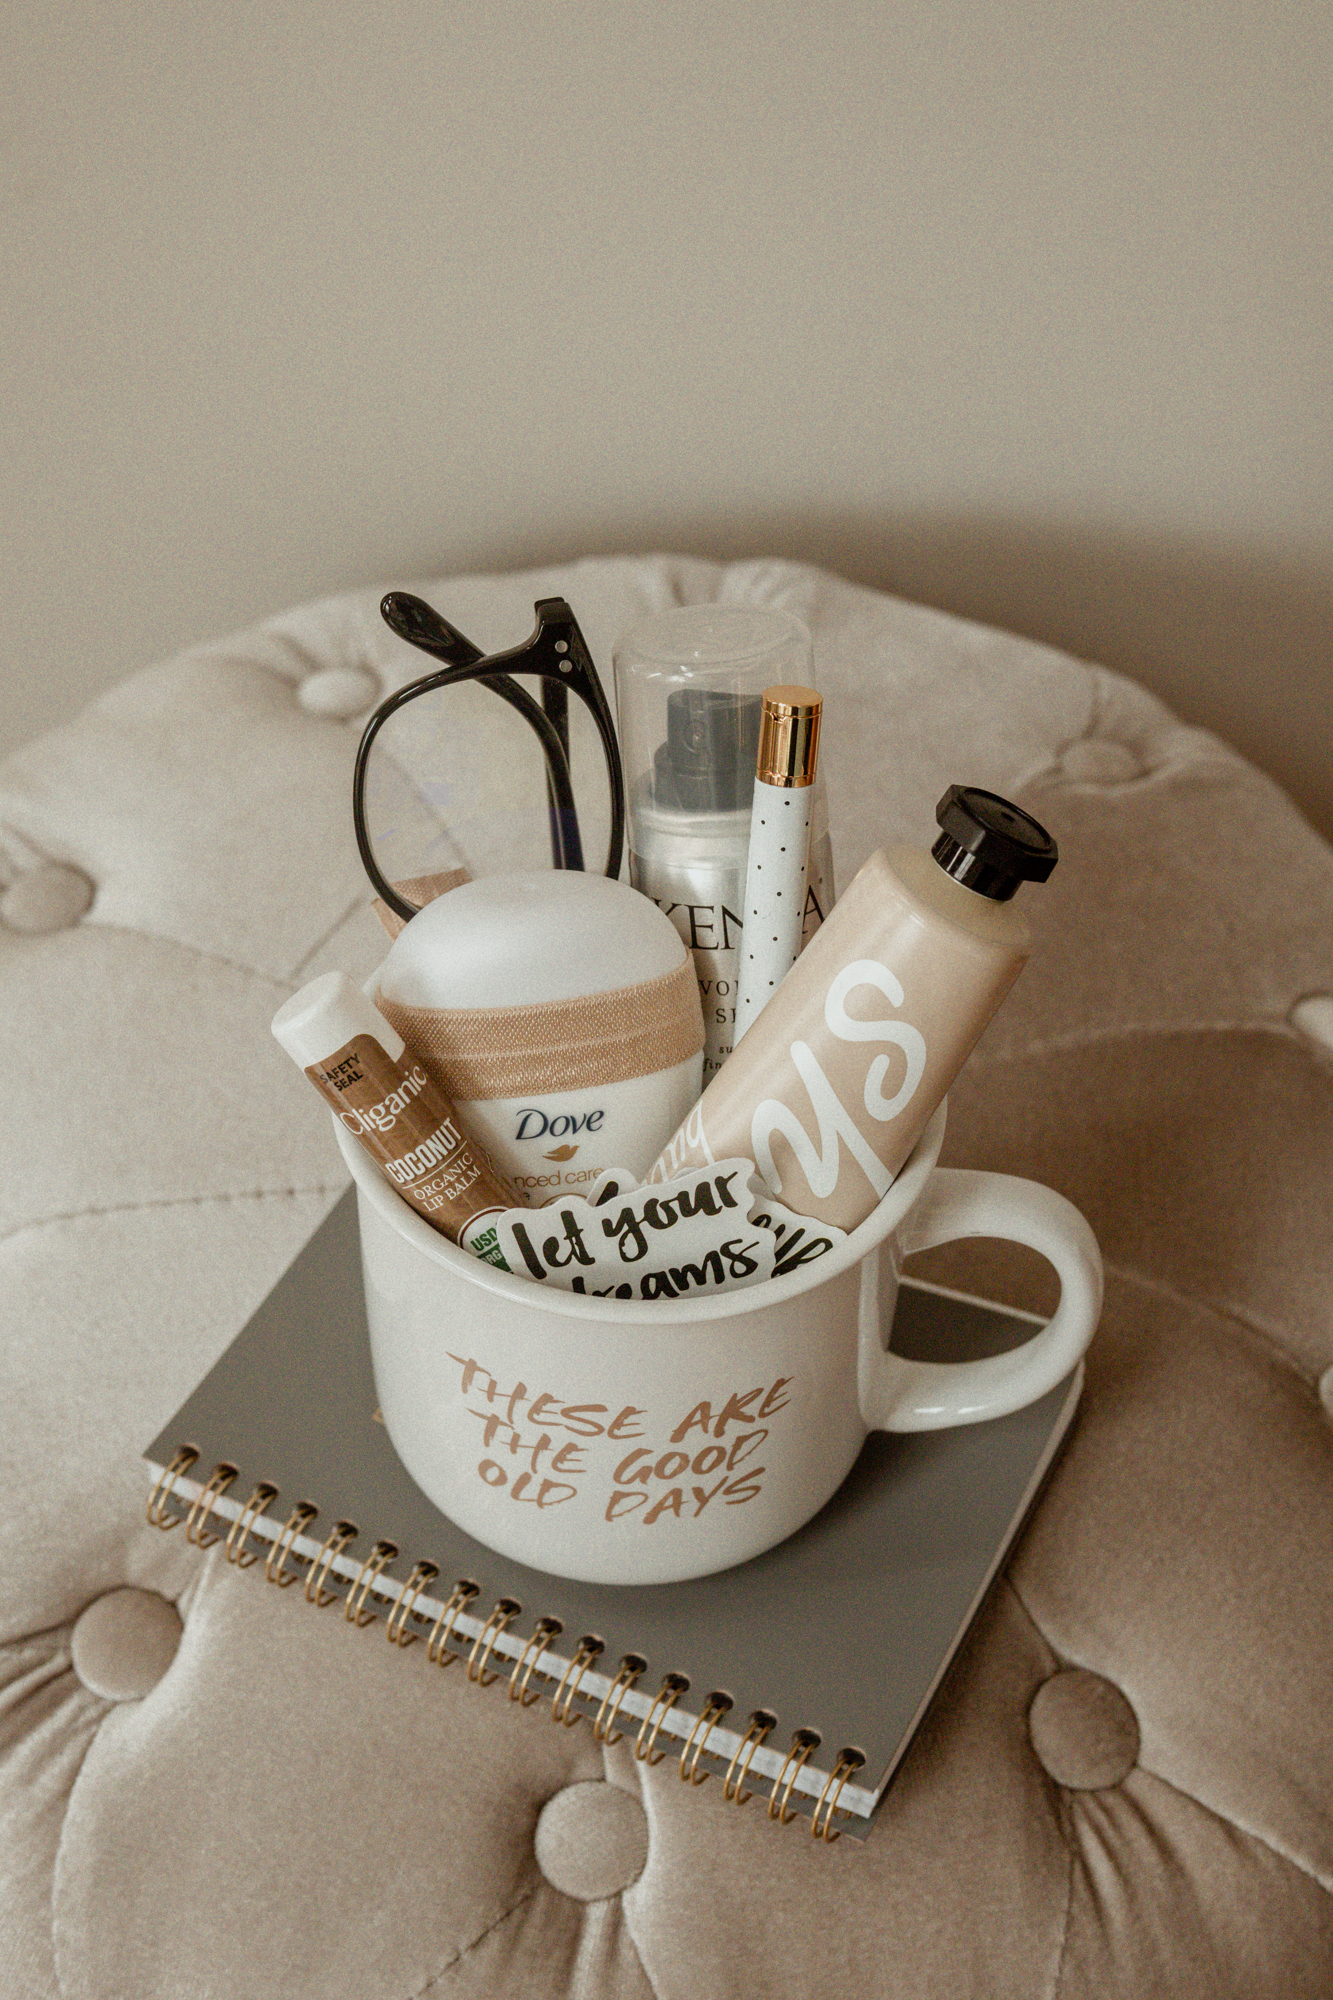 A filled mug gift idea for friends including travel-sized beauty products, blue light glasses, and motivational stickers.